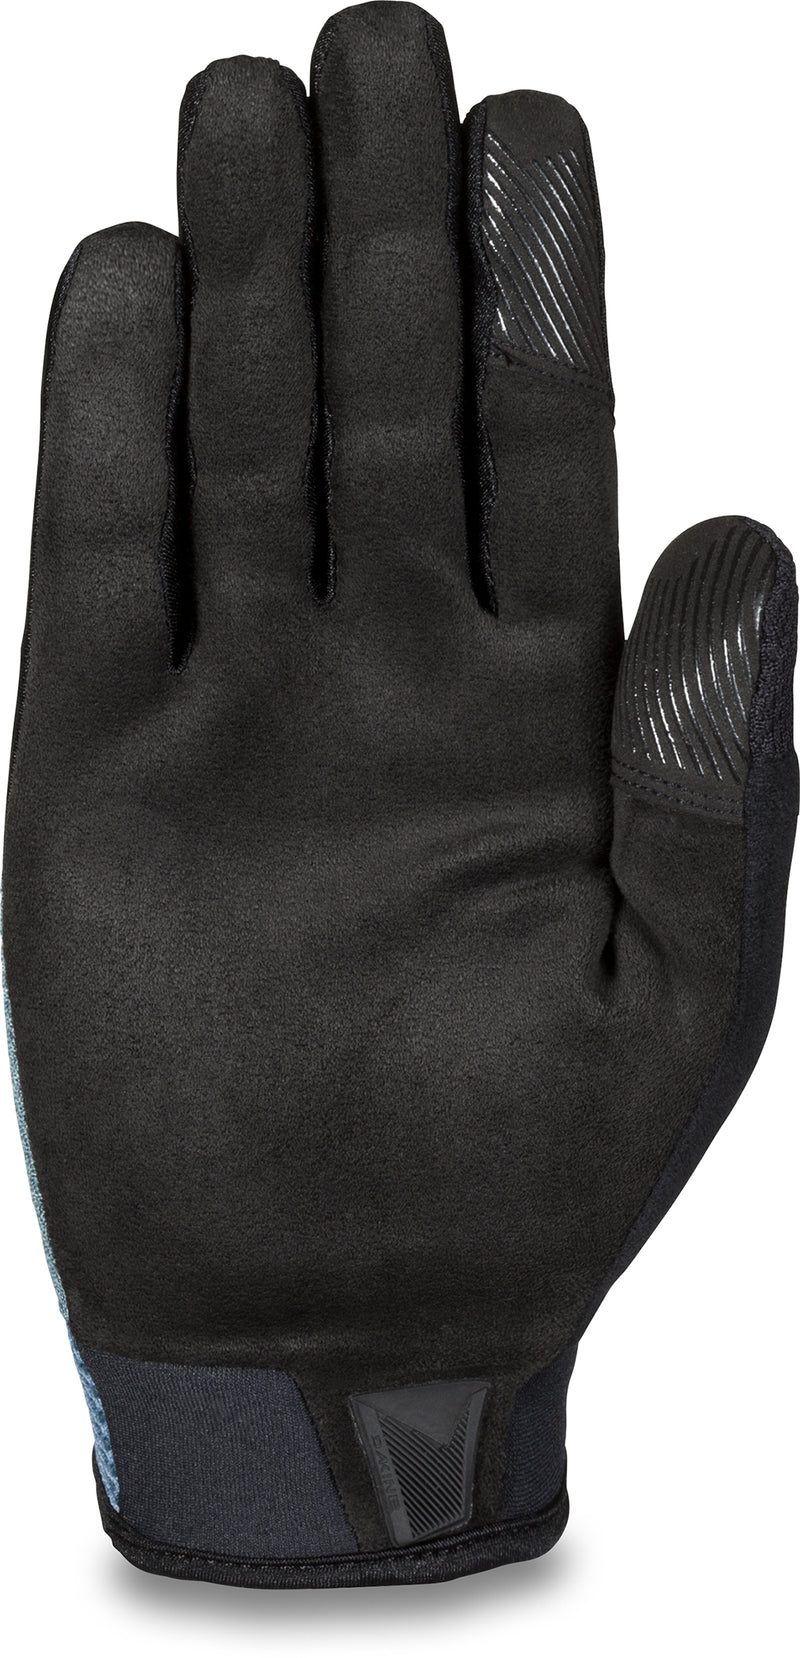 Dakine Covert Glove - Men's